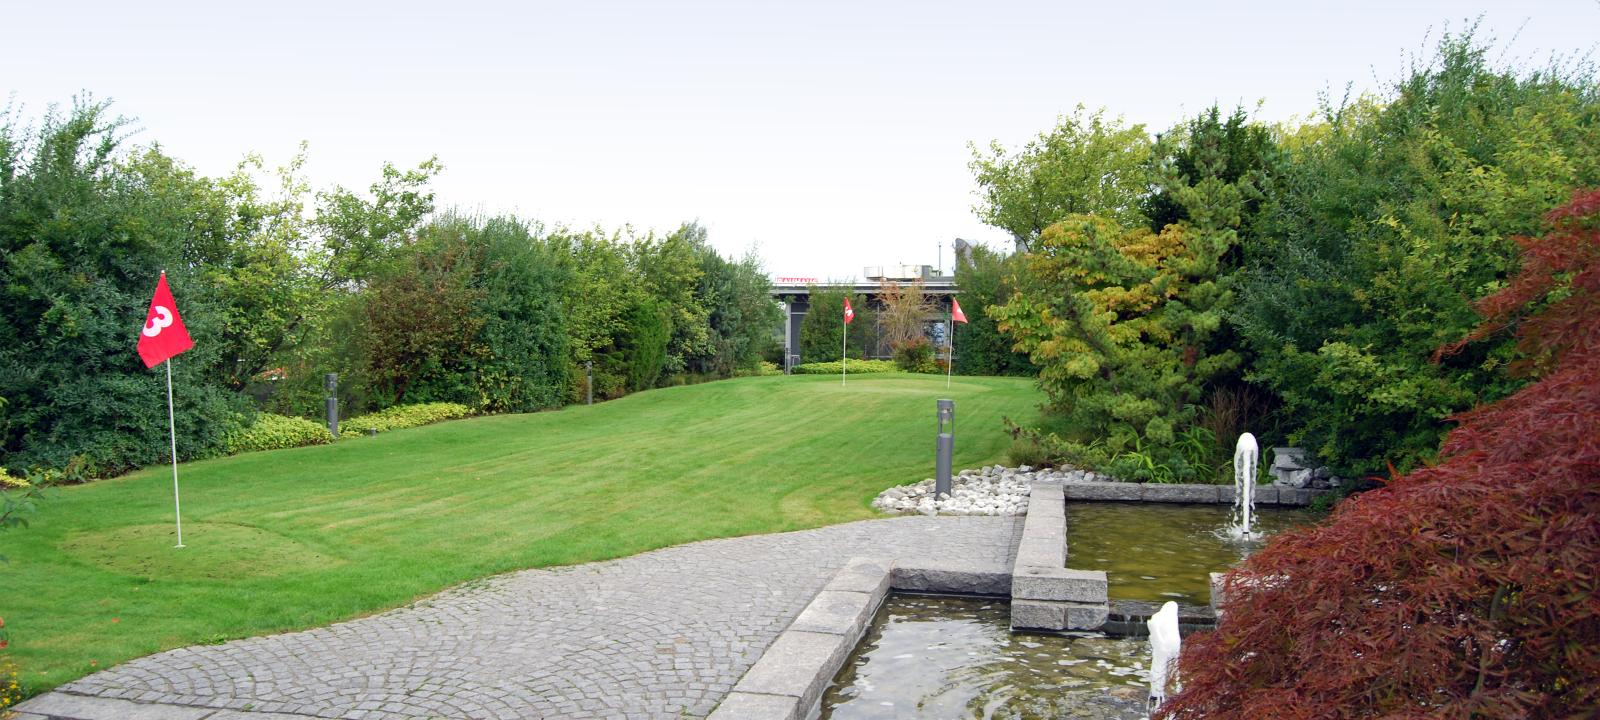 Roof garden with golf course and water basin